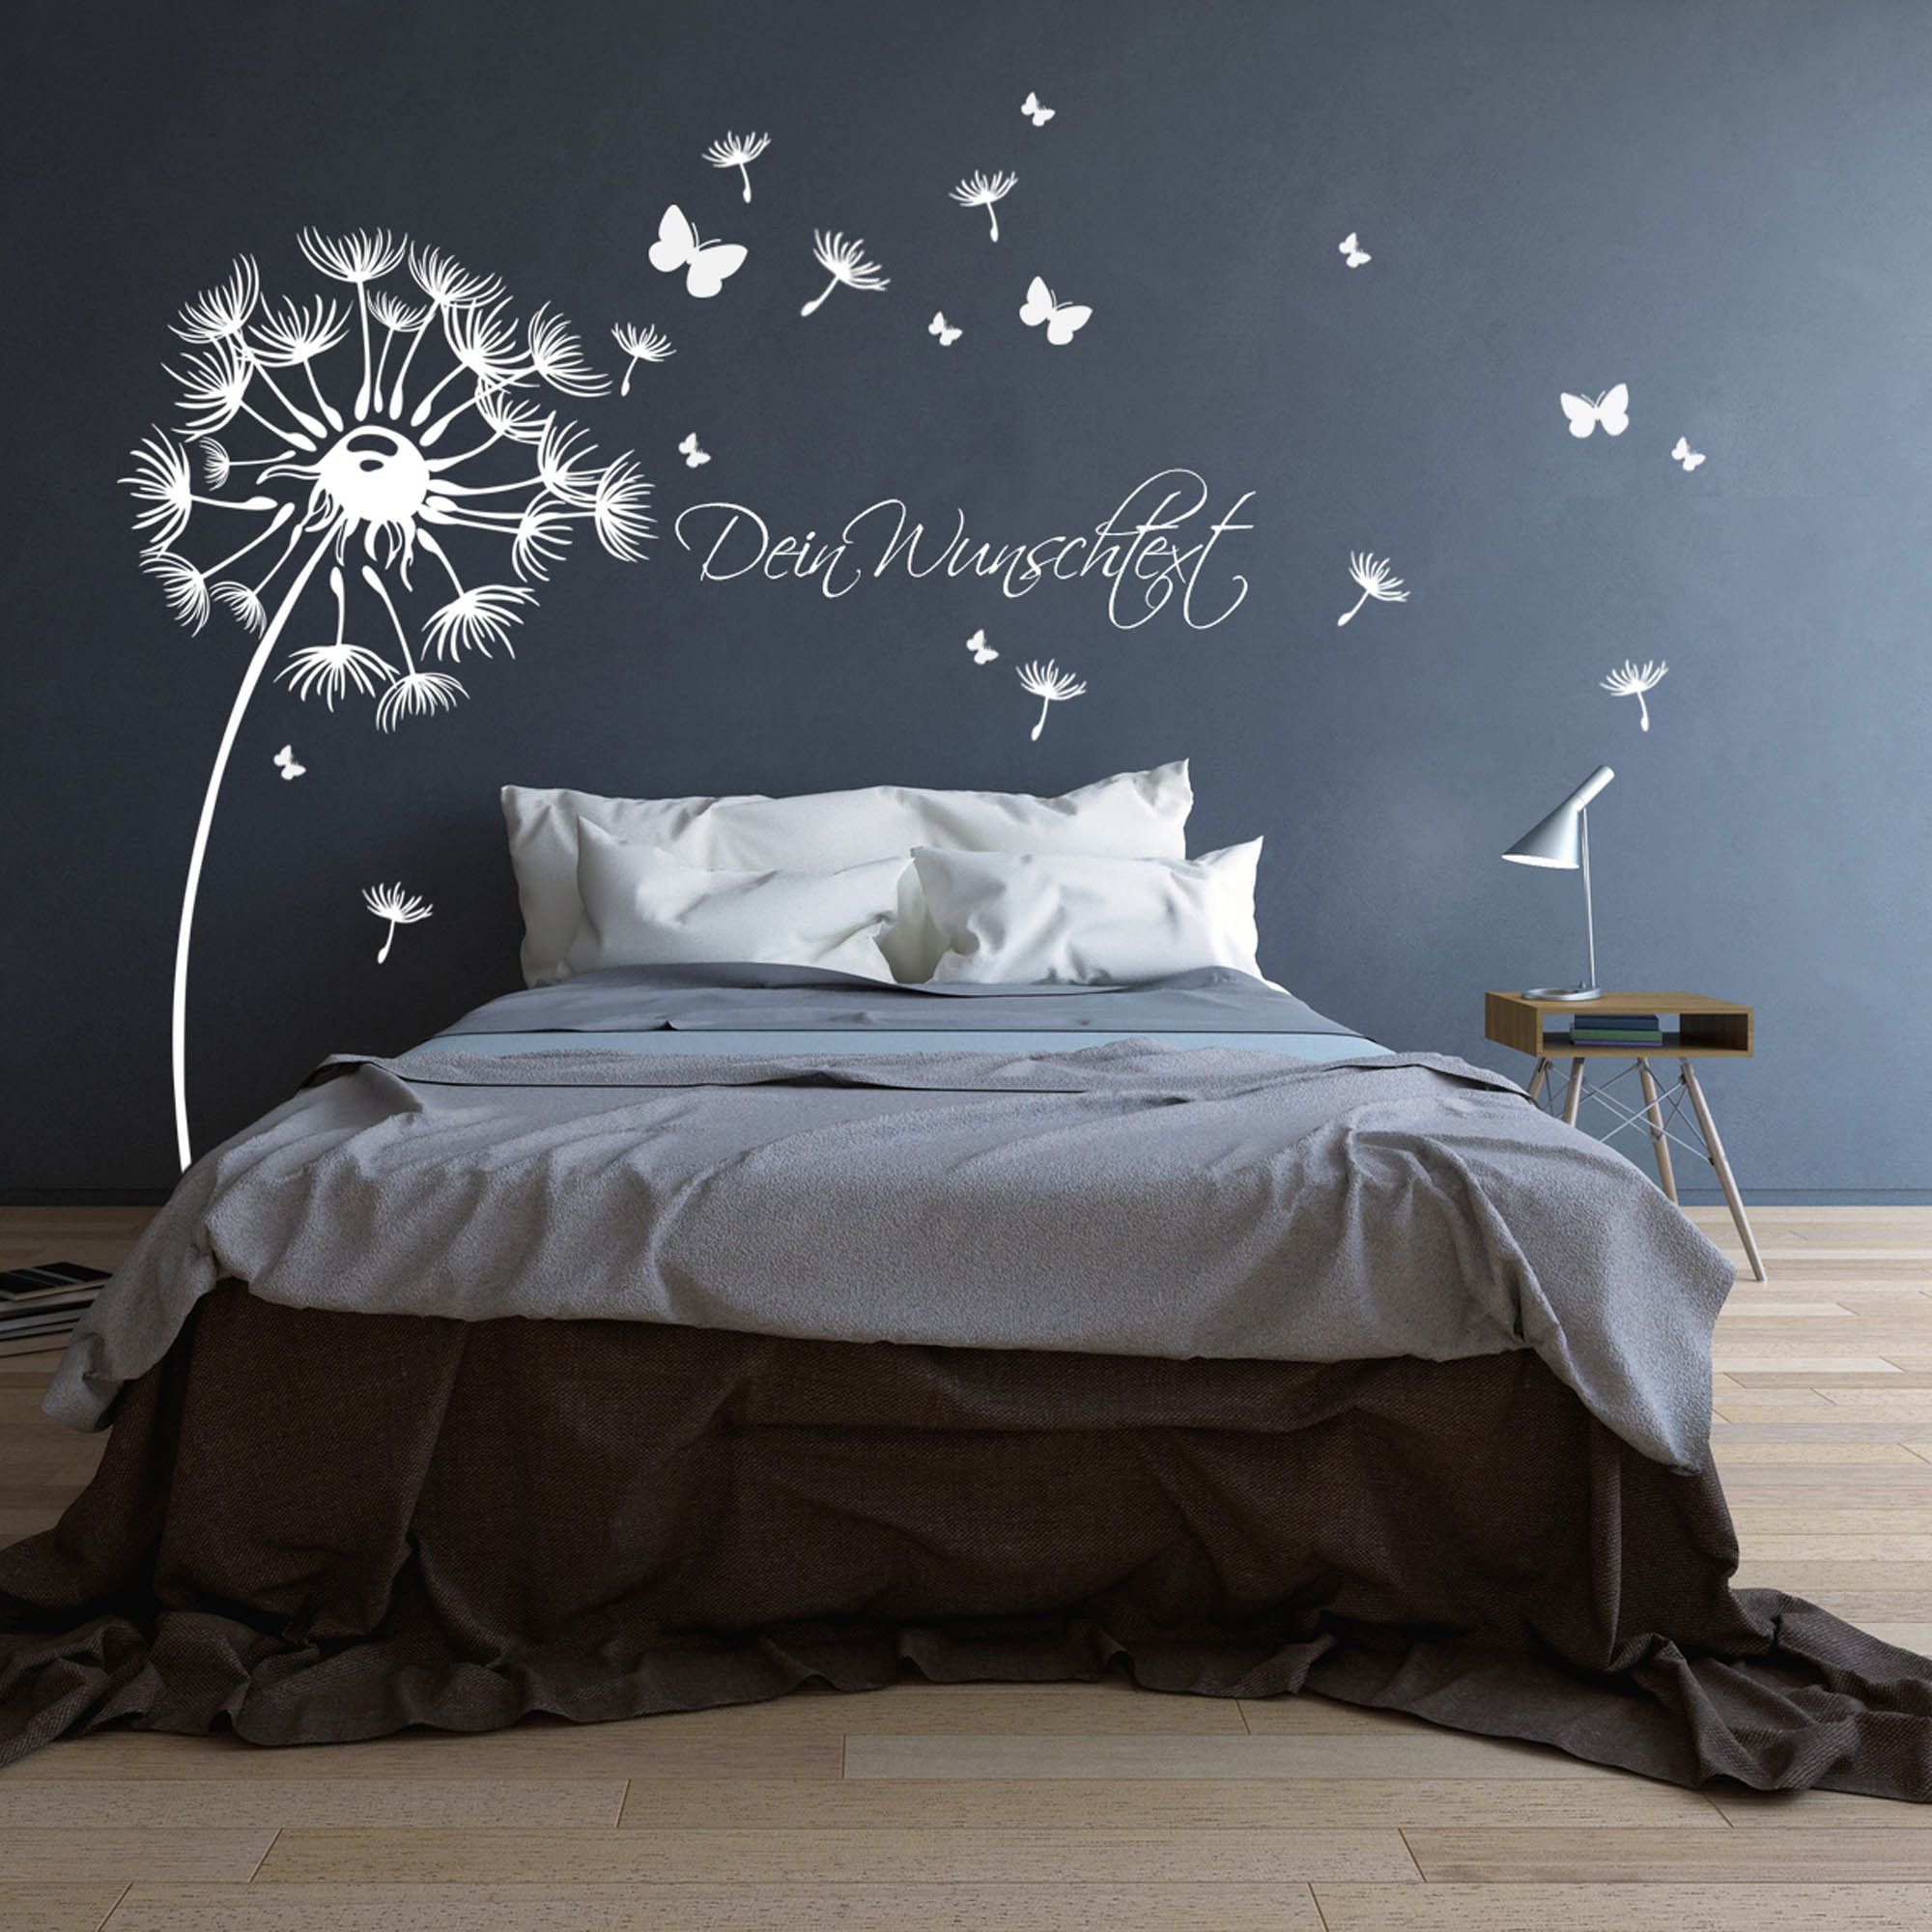 wandtattoo pusteblume mit schmetterlingen und wunschtext. Black Bedroom Furniture Sets. Home Design Ideas